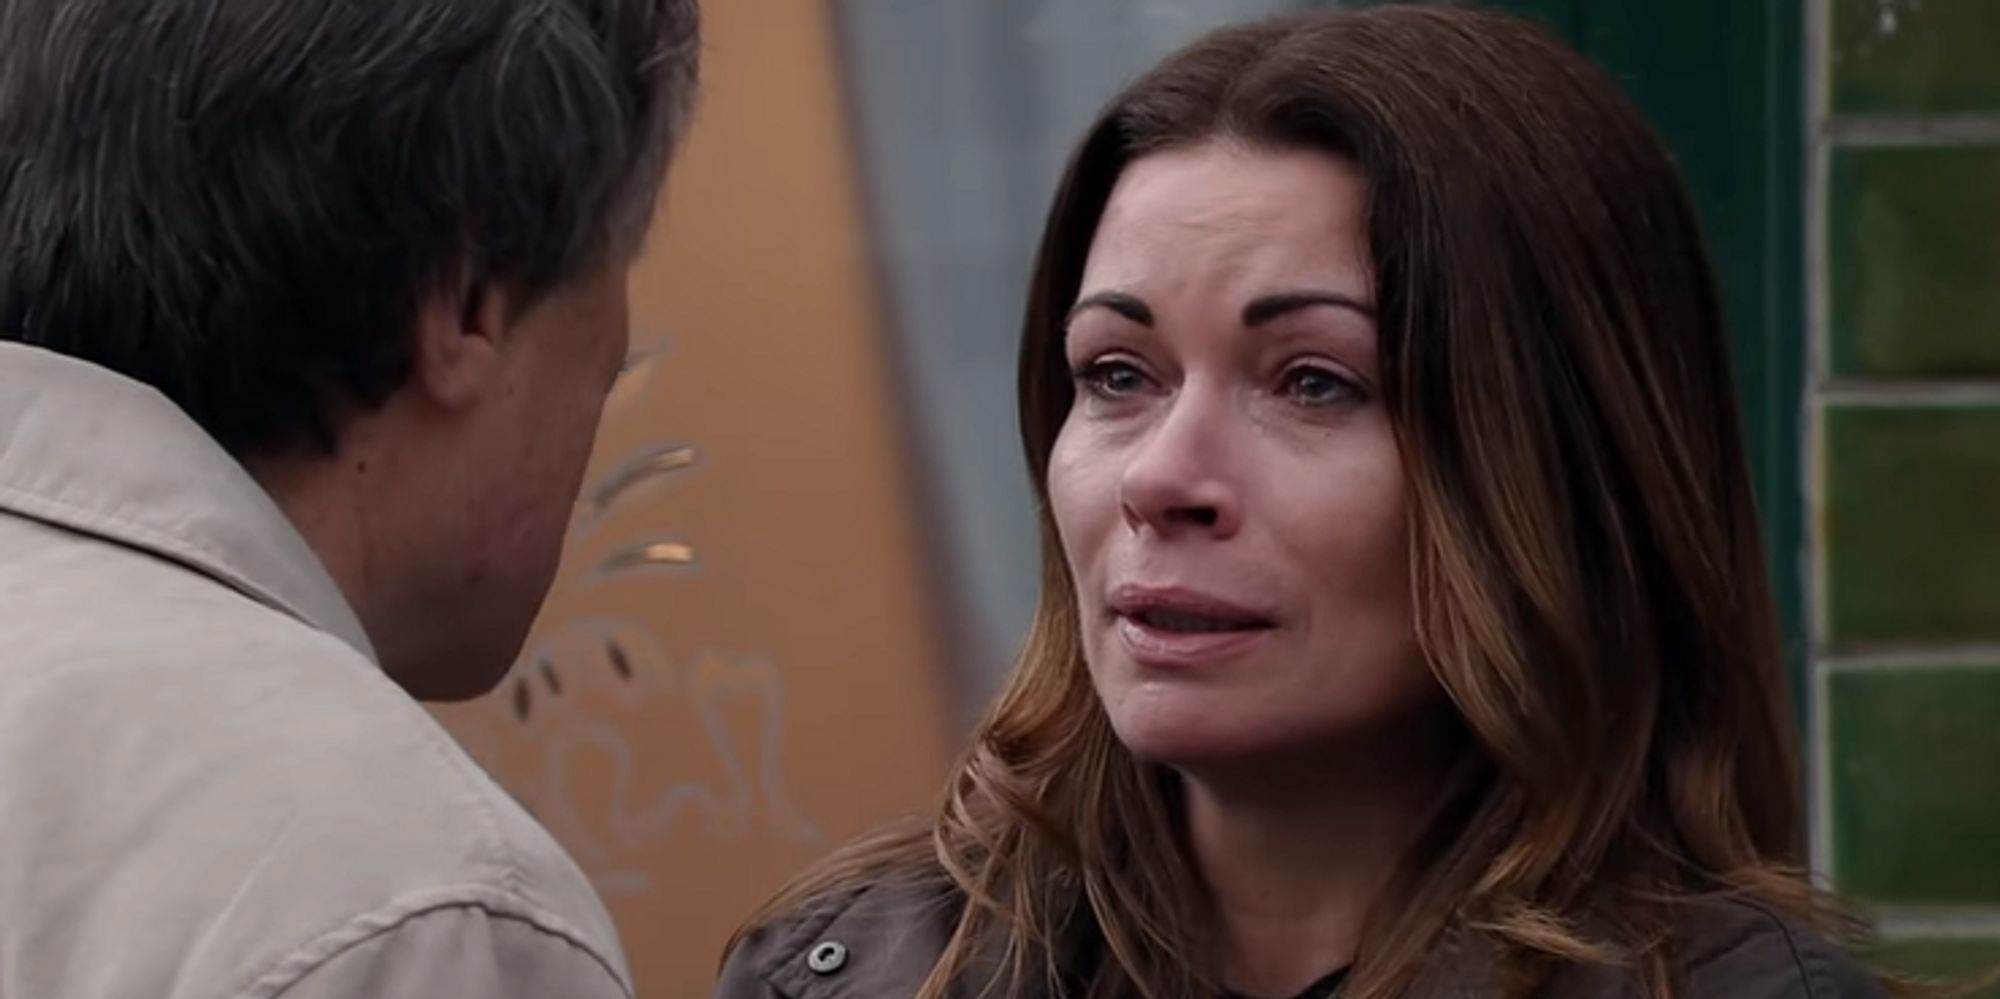 'Coronation Street': Carla Connor Makes An Emotional Exit As Alison King Bows Out After 10 Years